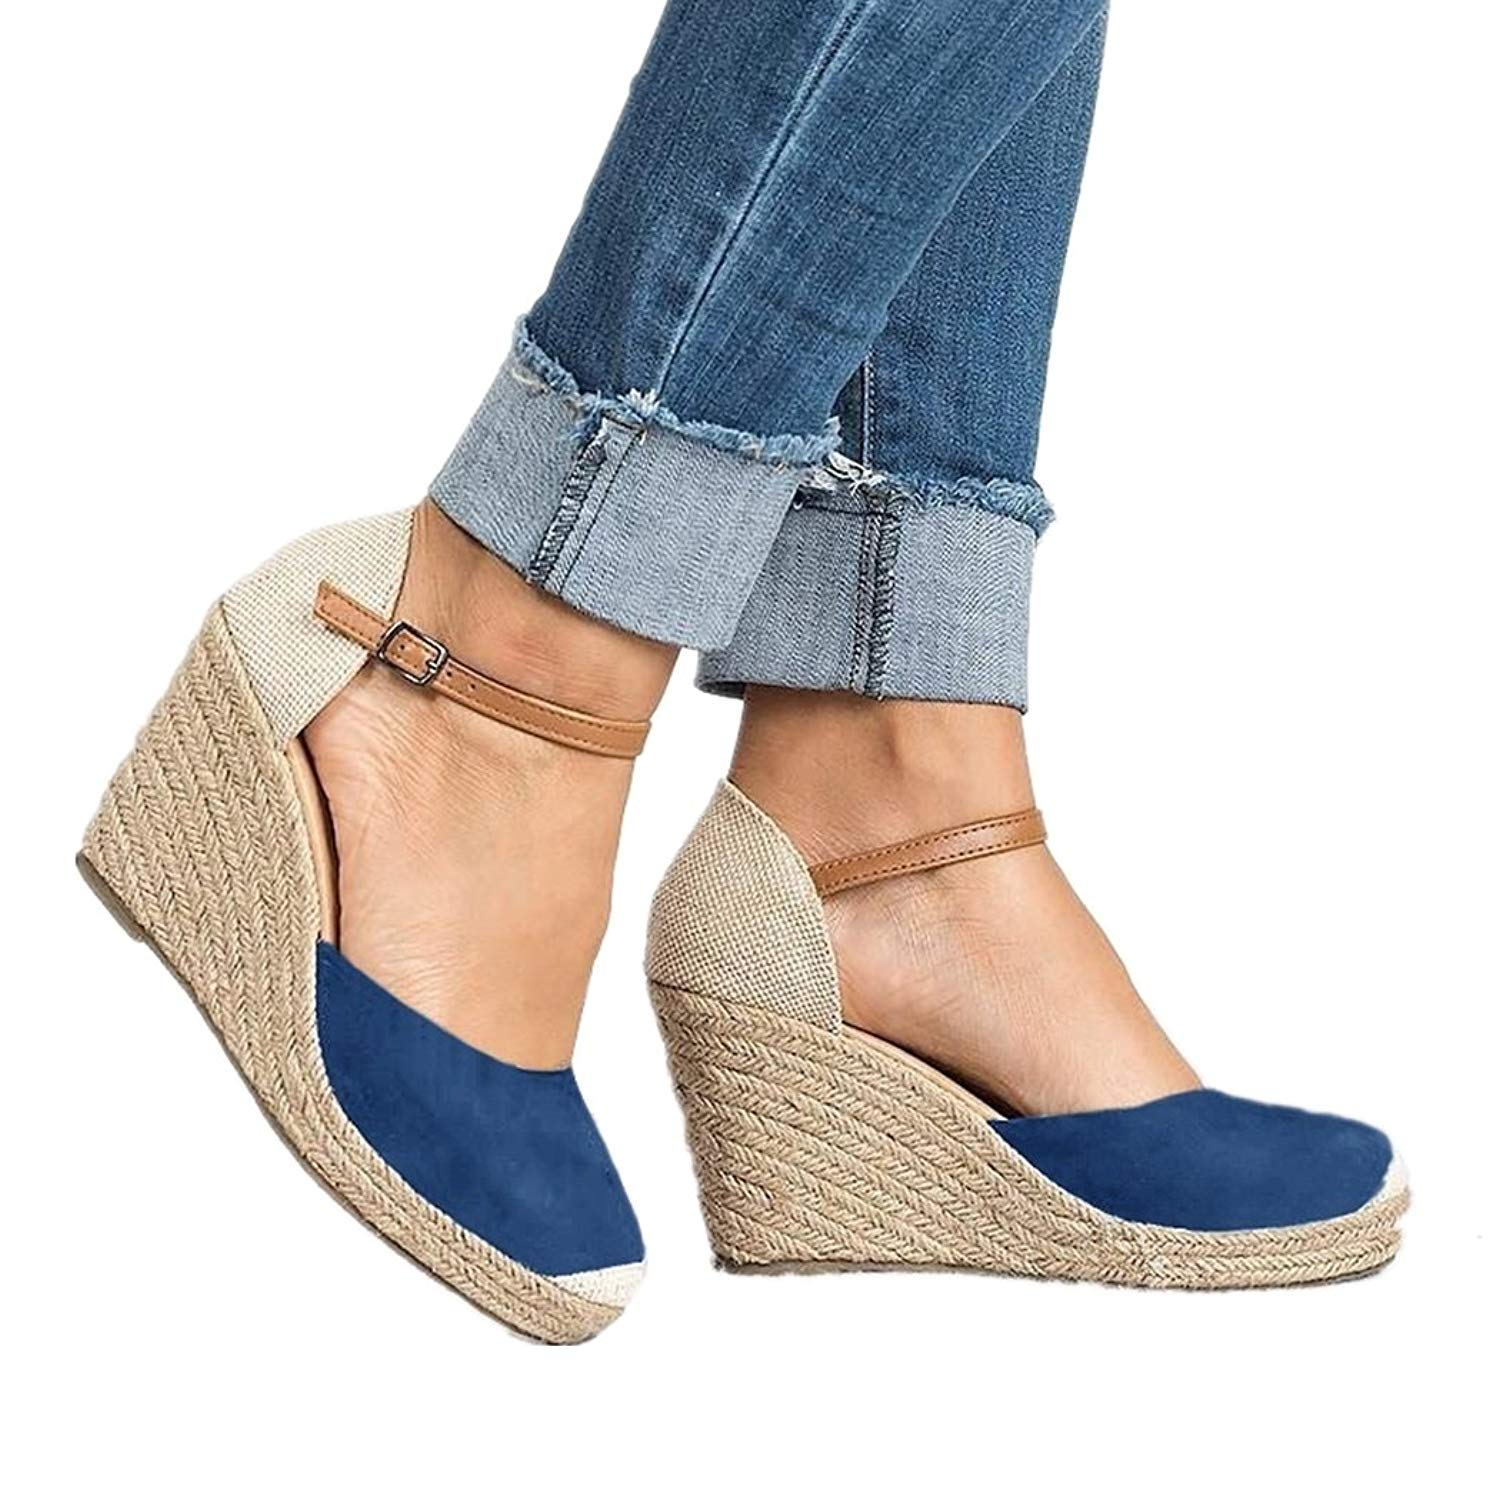 6008a9c93c9 Get Quotations · Hawaoo Womens Wedge Sandals Espadrilles Heels Ankle Strap Closed  Toe Suede Wedge Wedding Sandal